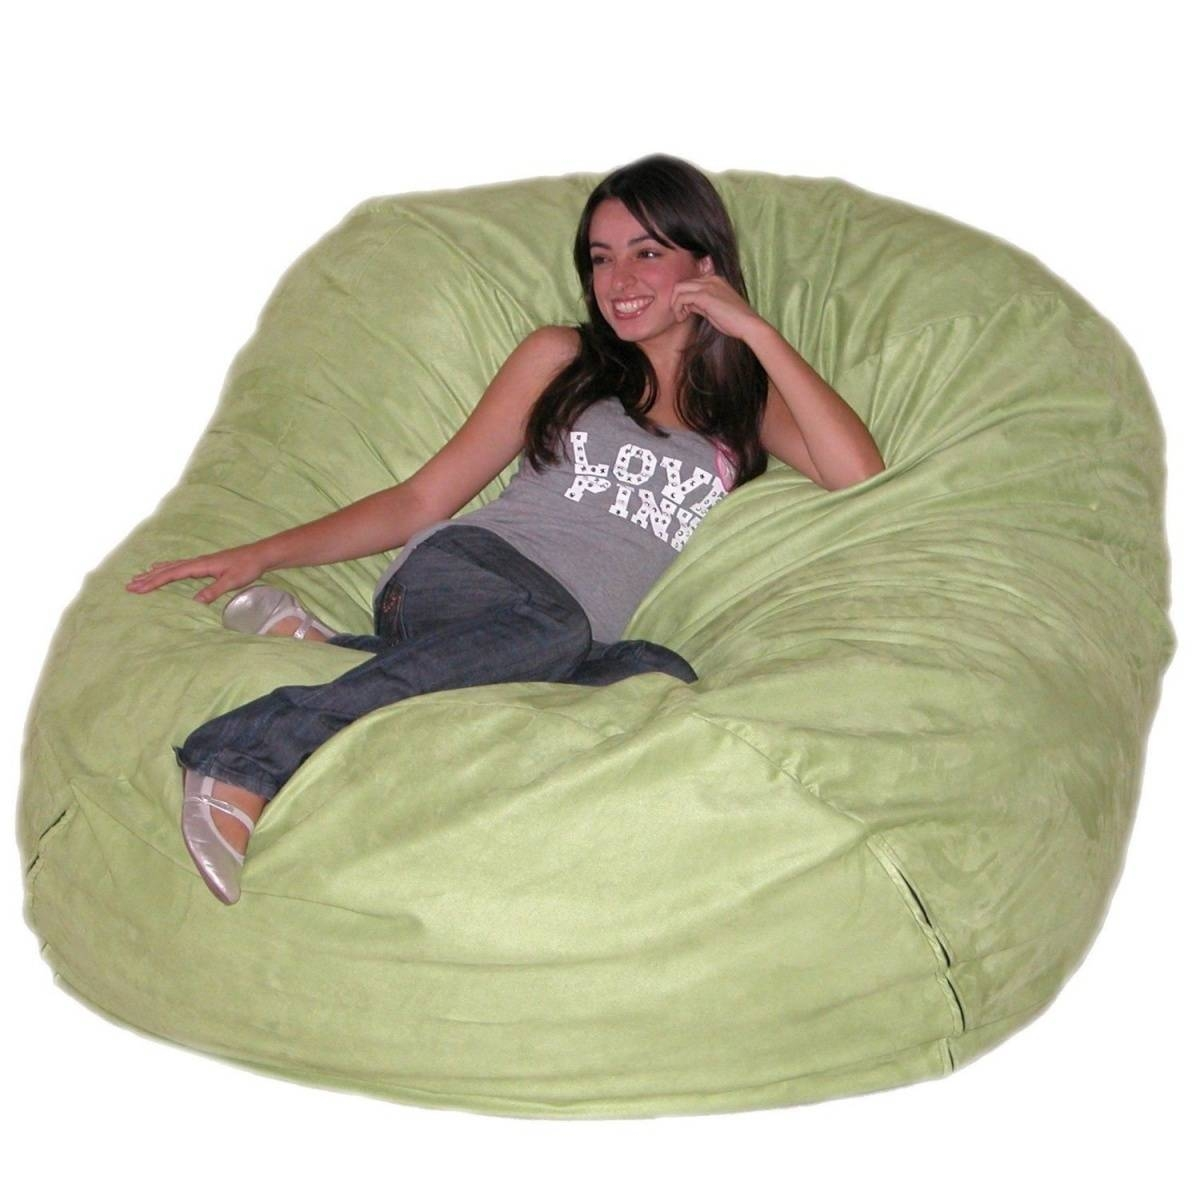 Lovely Giant Bean Bag Chairs For Your Home Decorating Ideas With within Giant Bean Bag Chairs (Image 15 of 15)